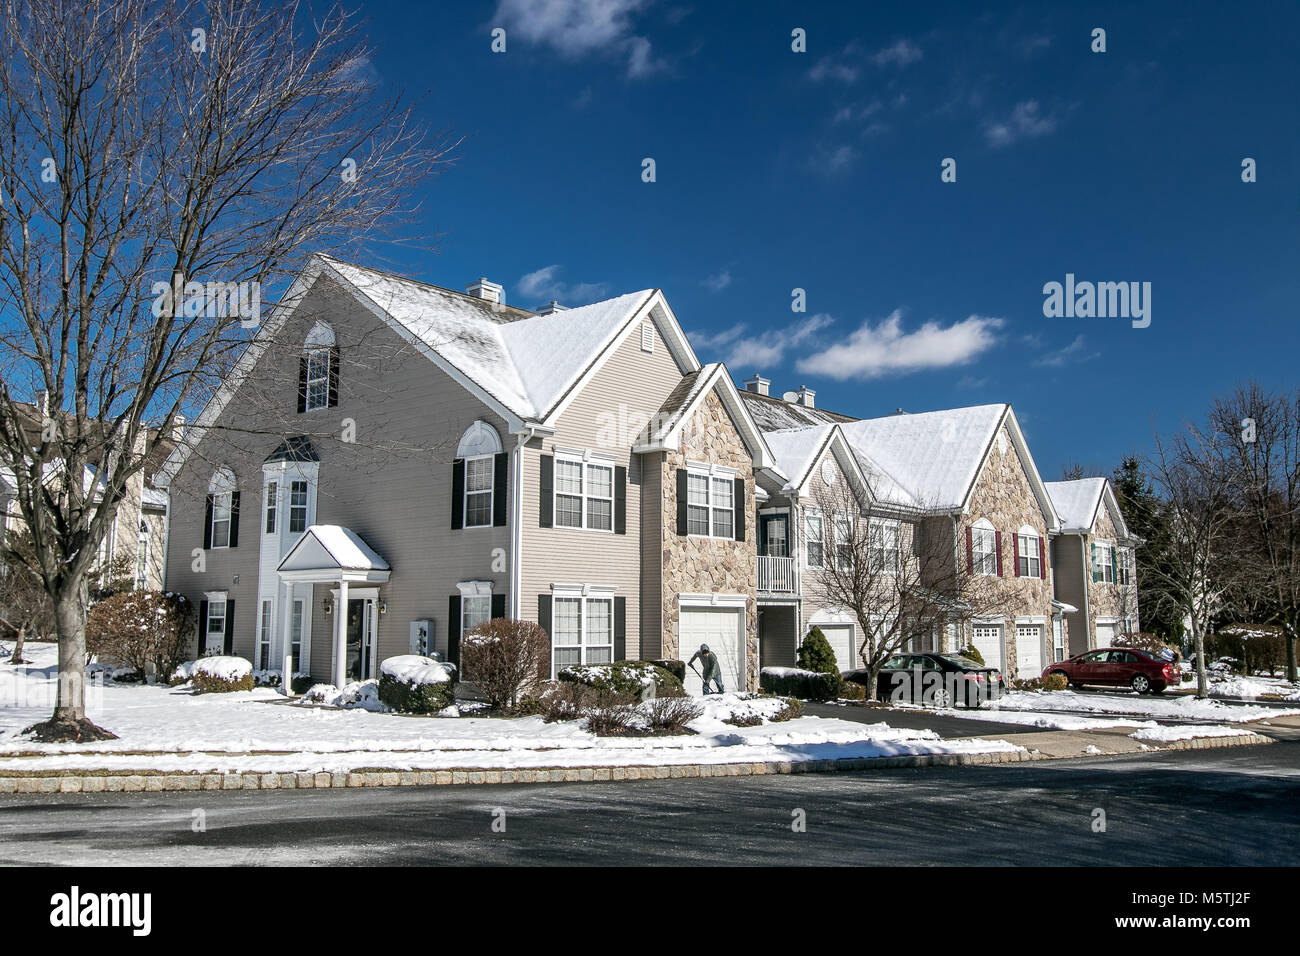 Suburban American townhouse after a recent snowfall. Stock Photo